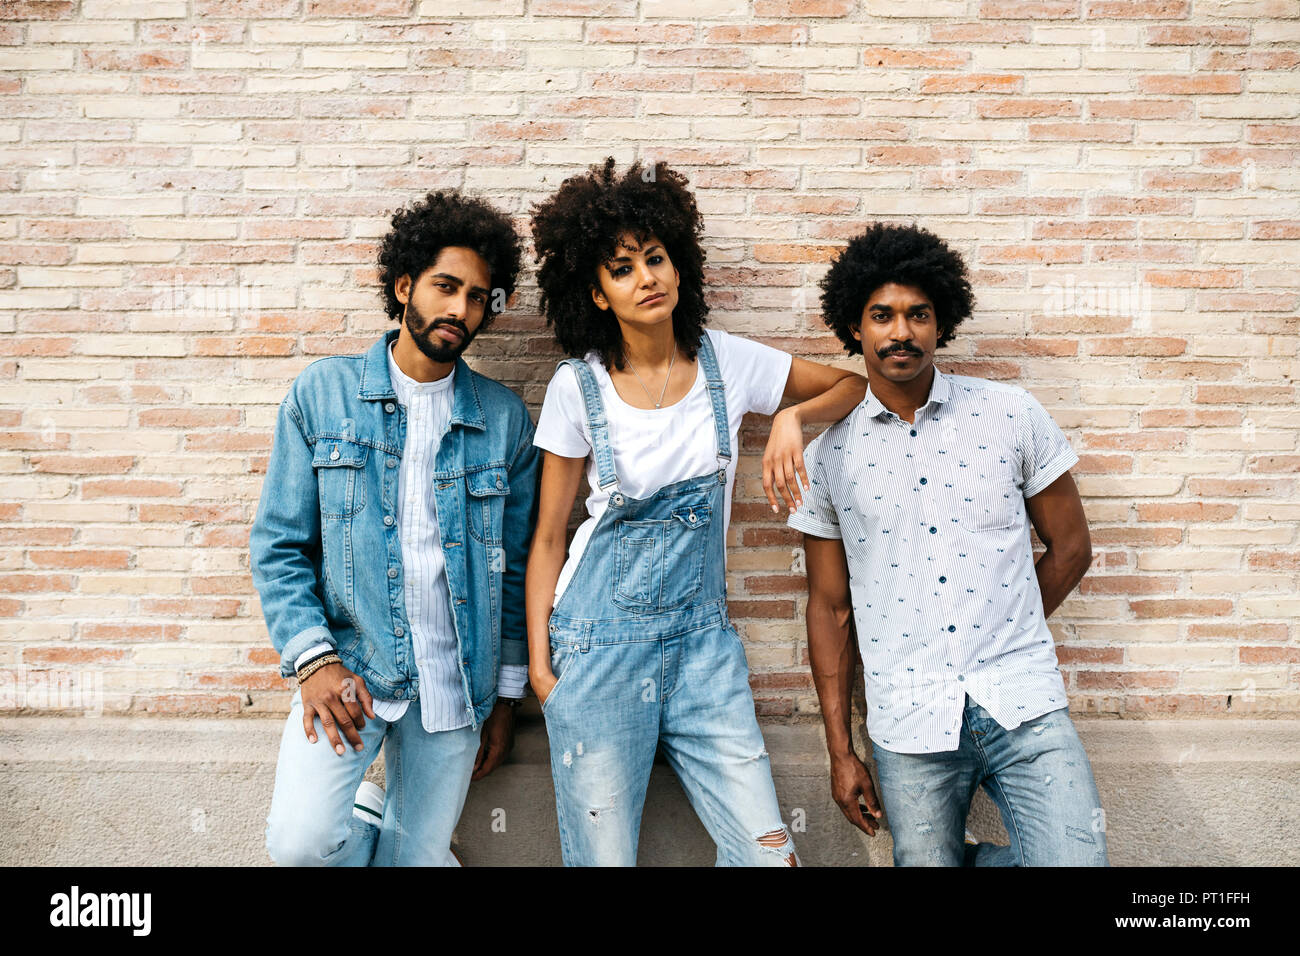 Portrait of three friends wearing denim standing in front of brick wall - Stock Image